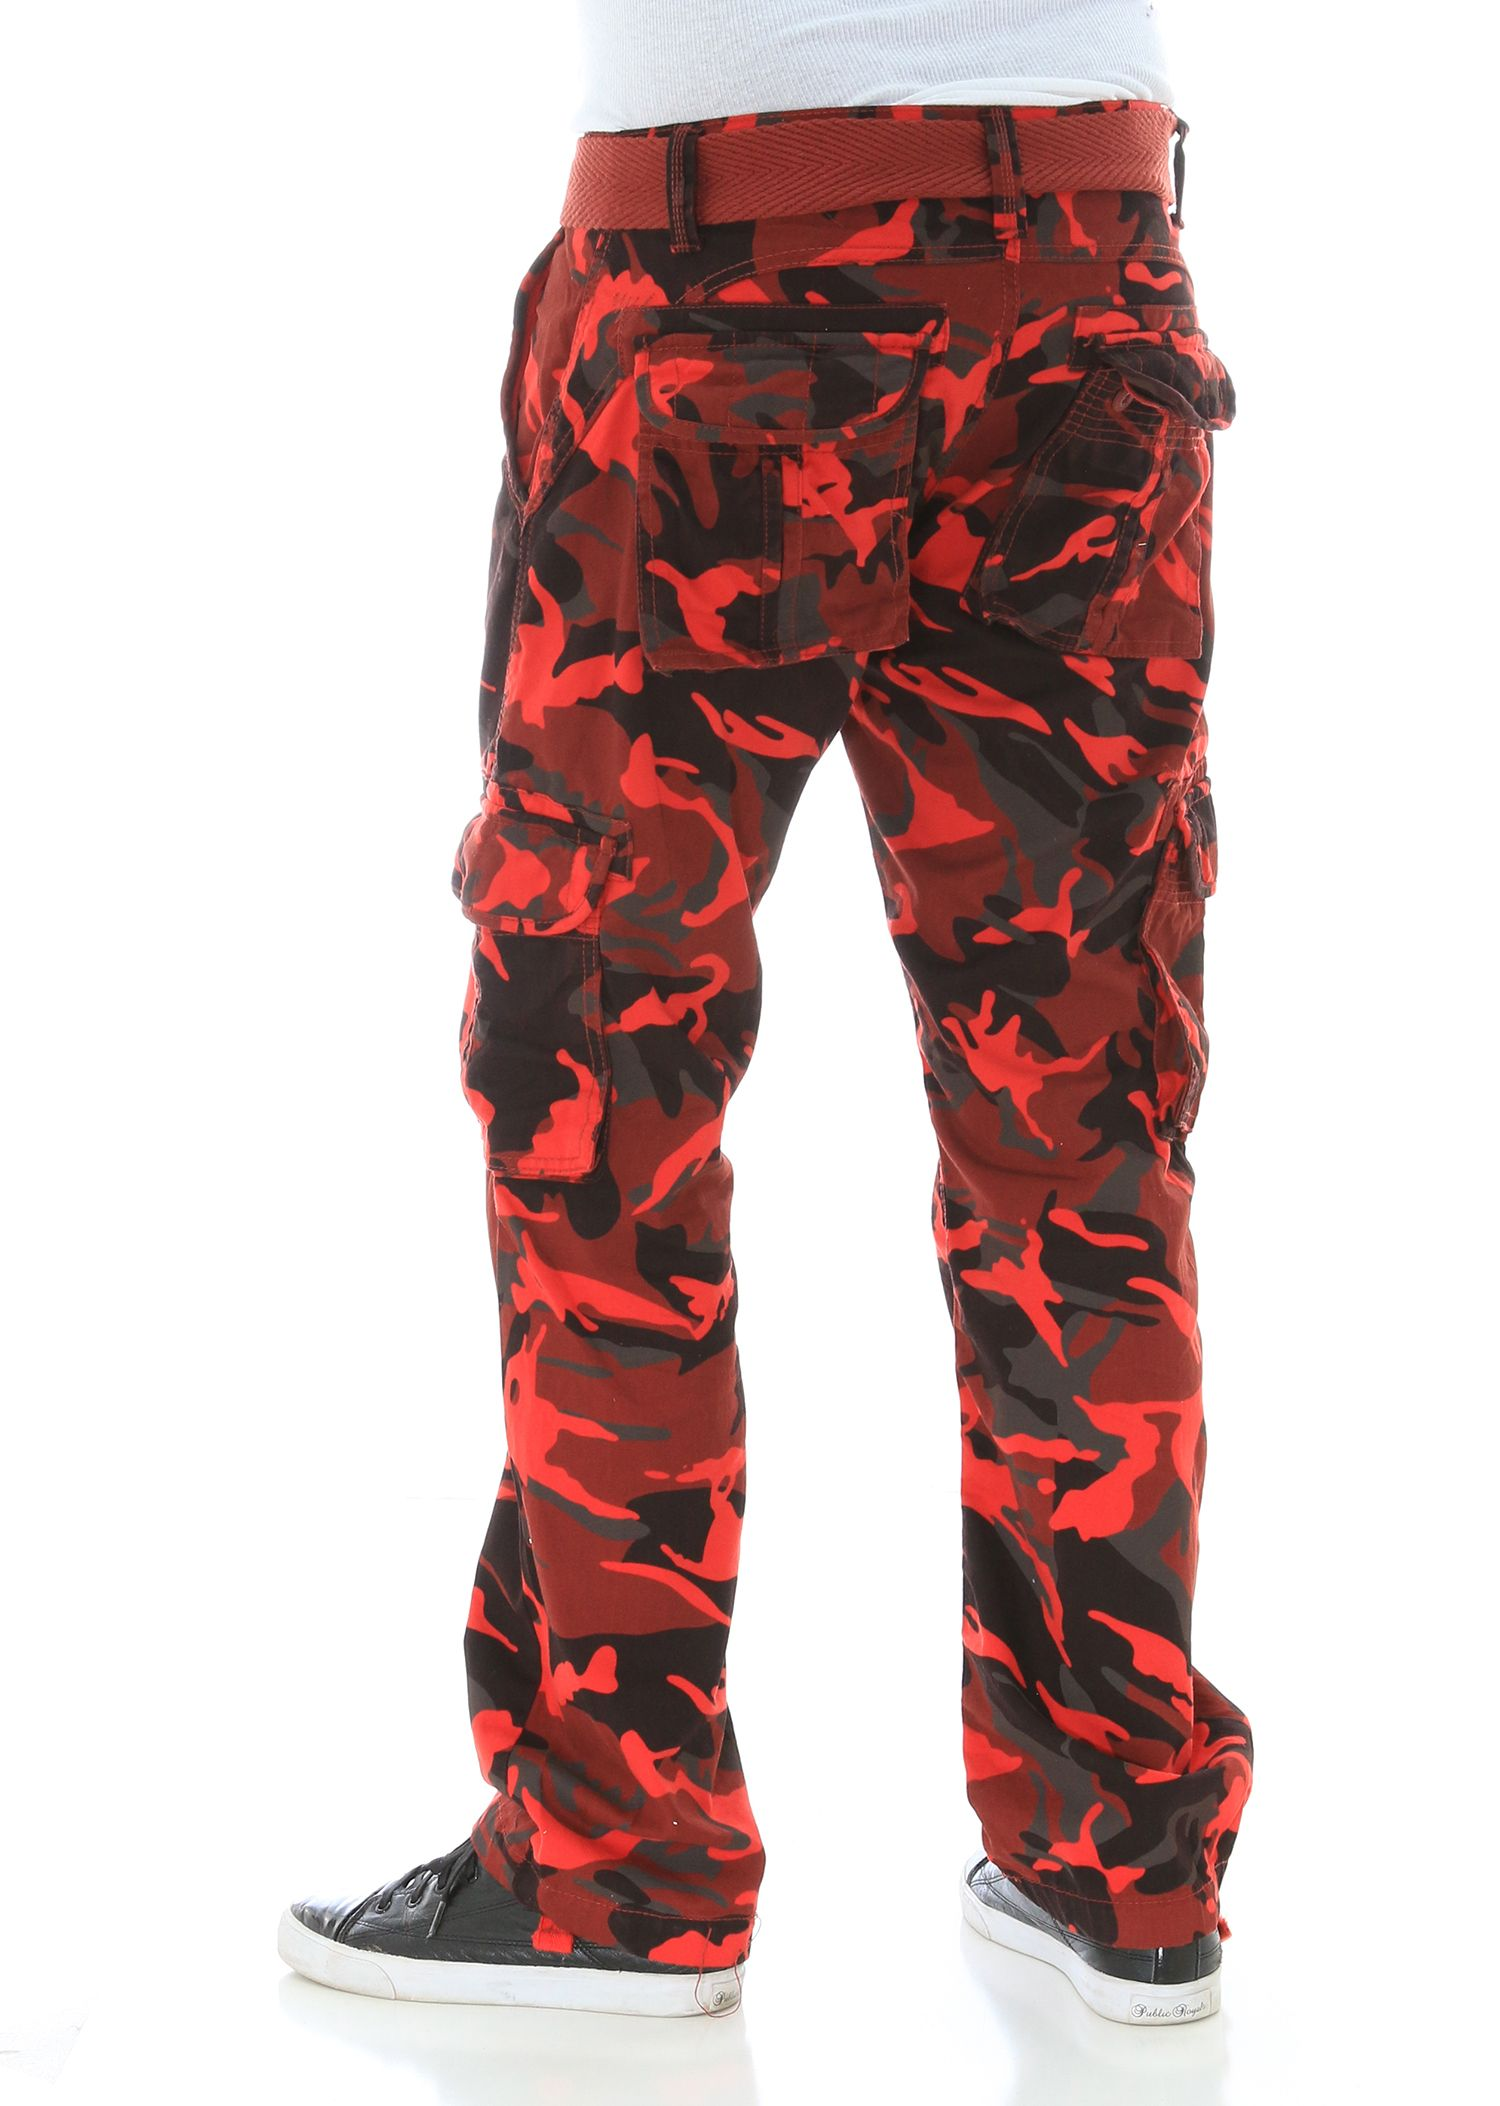 Fashion style Cargo camo pants with jordans photo for girls